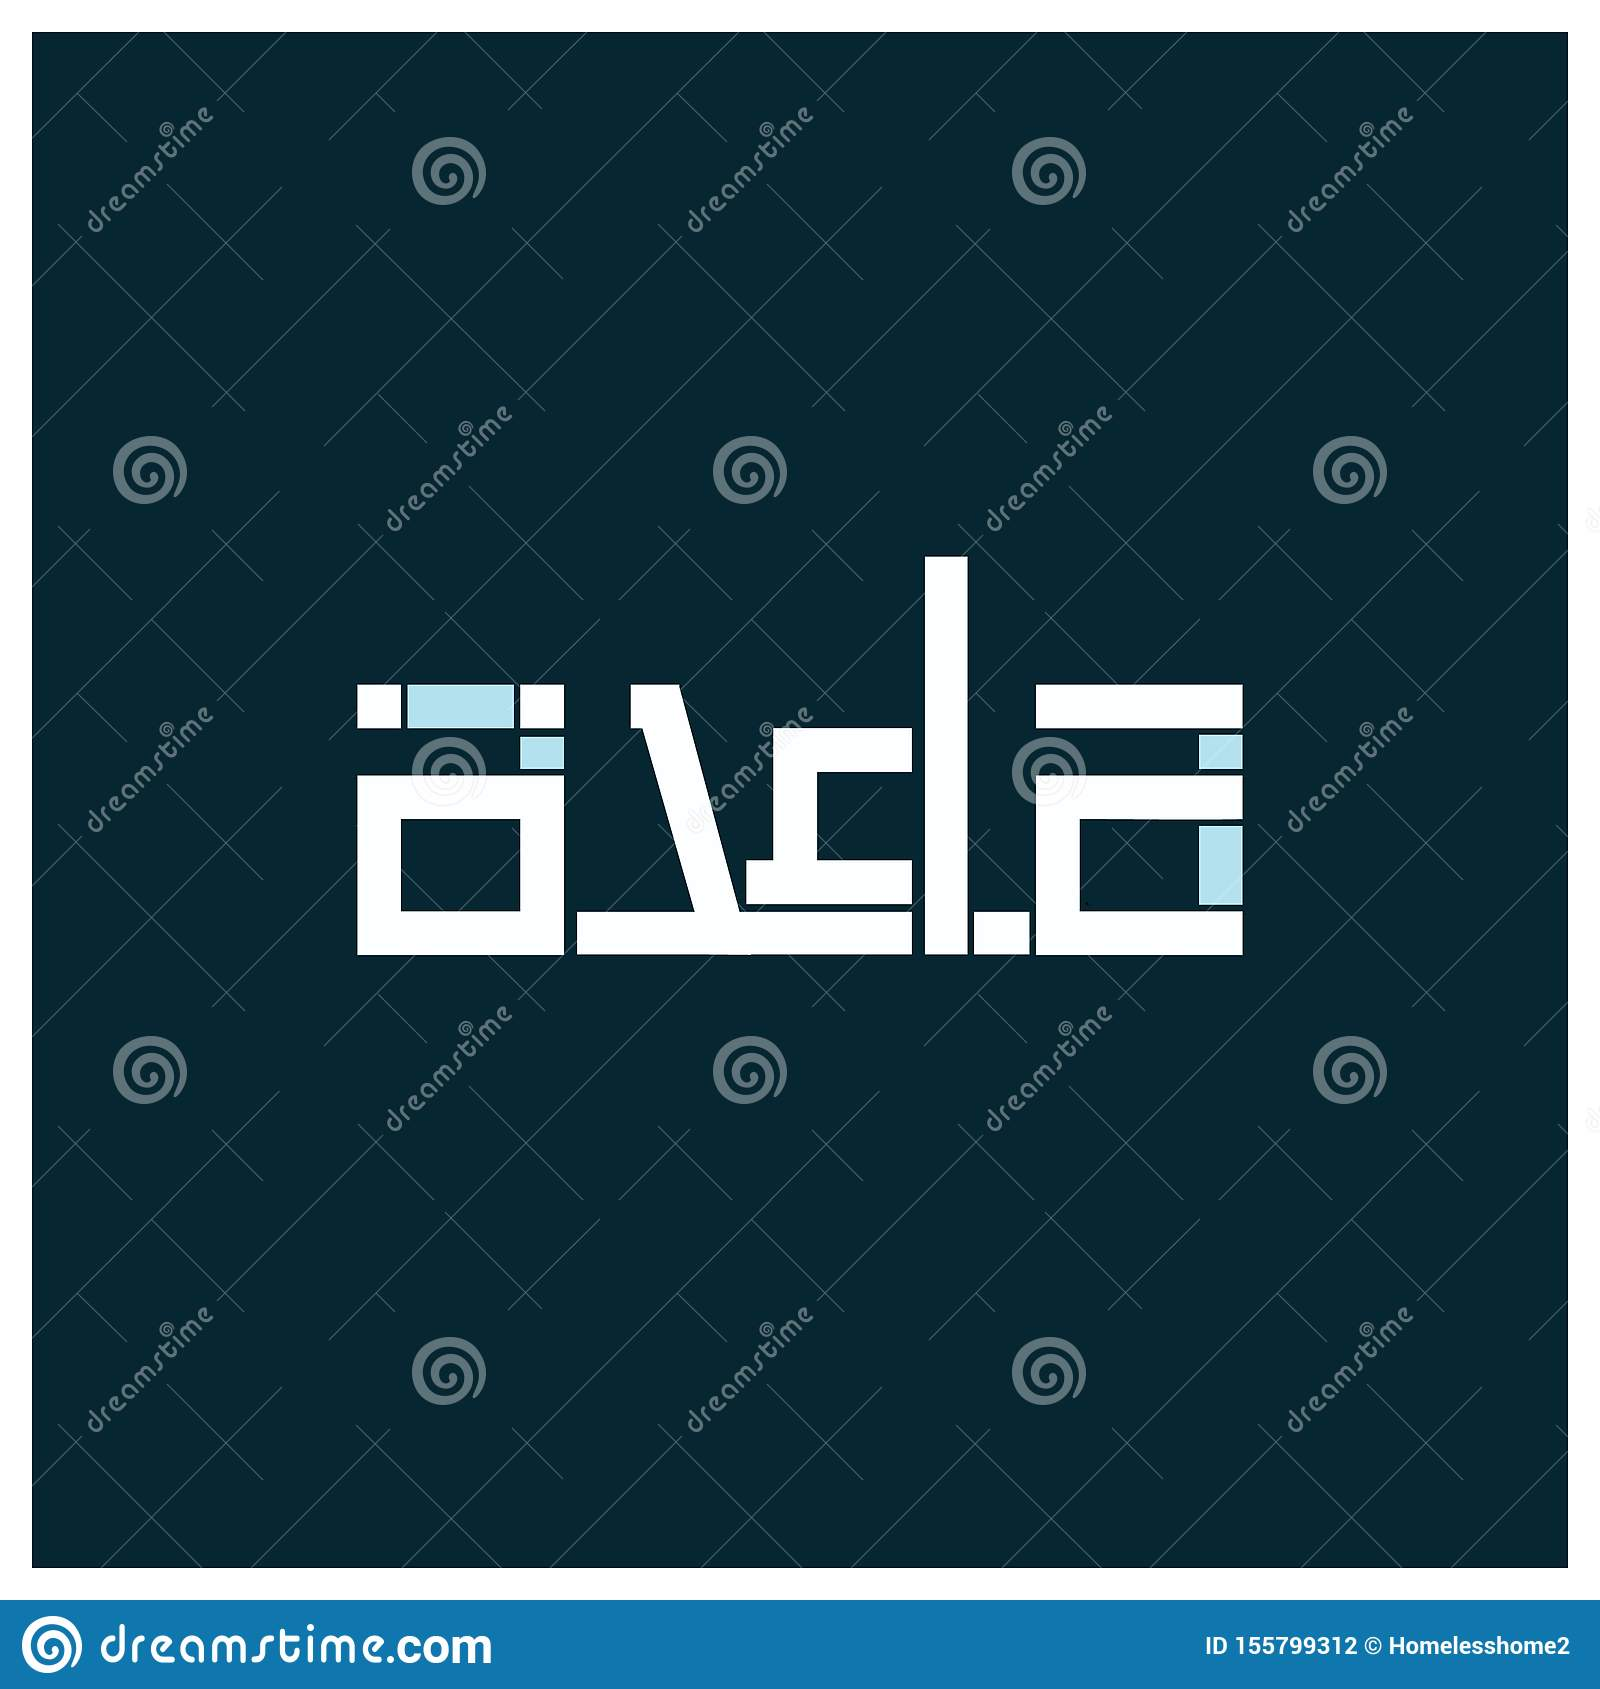 Smart Logo Design Concept For Aida Name In Arabic Written In